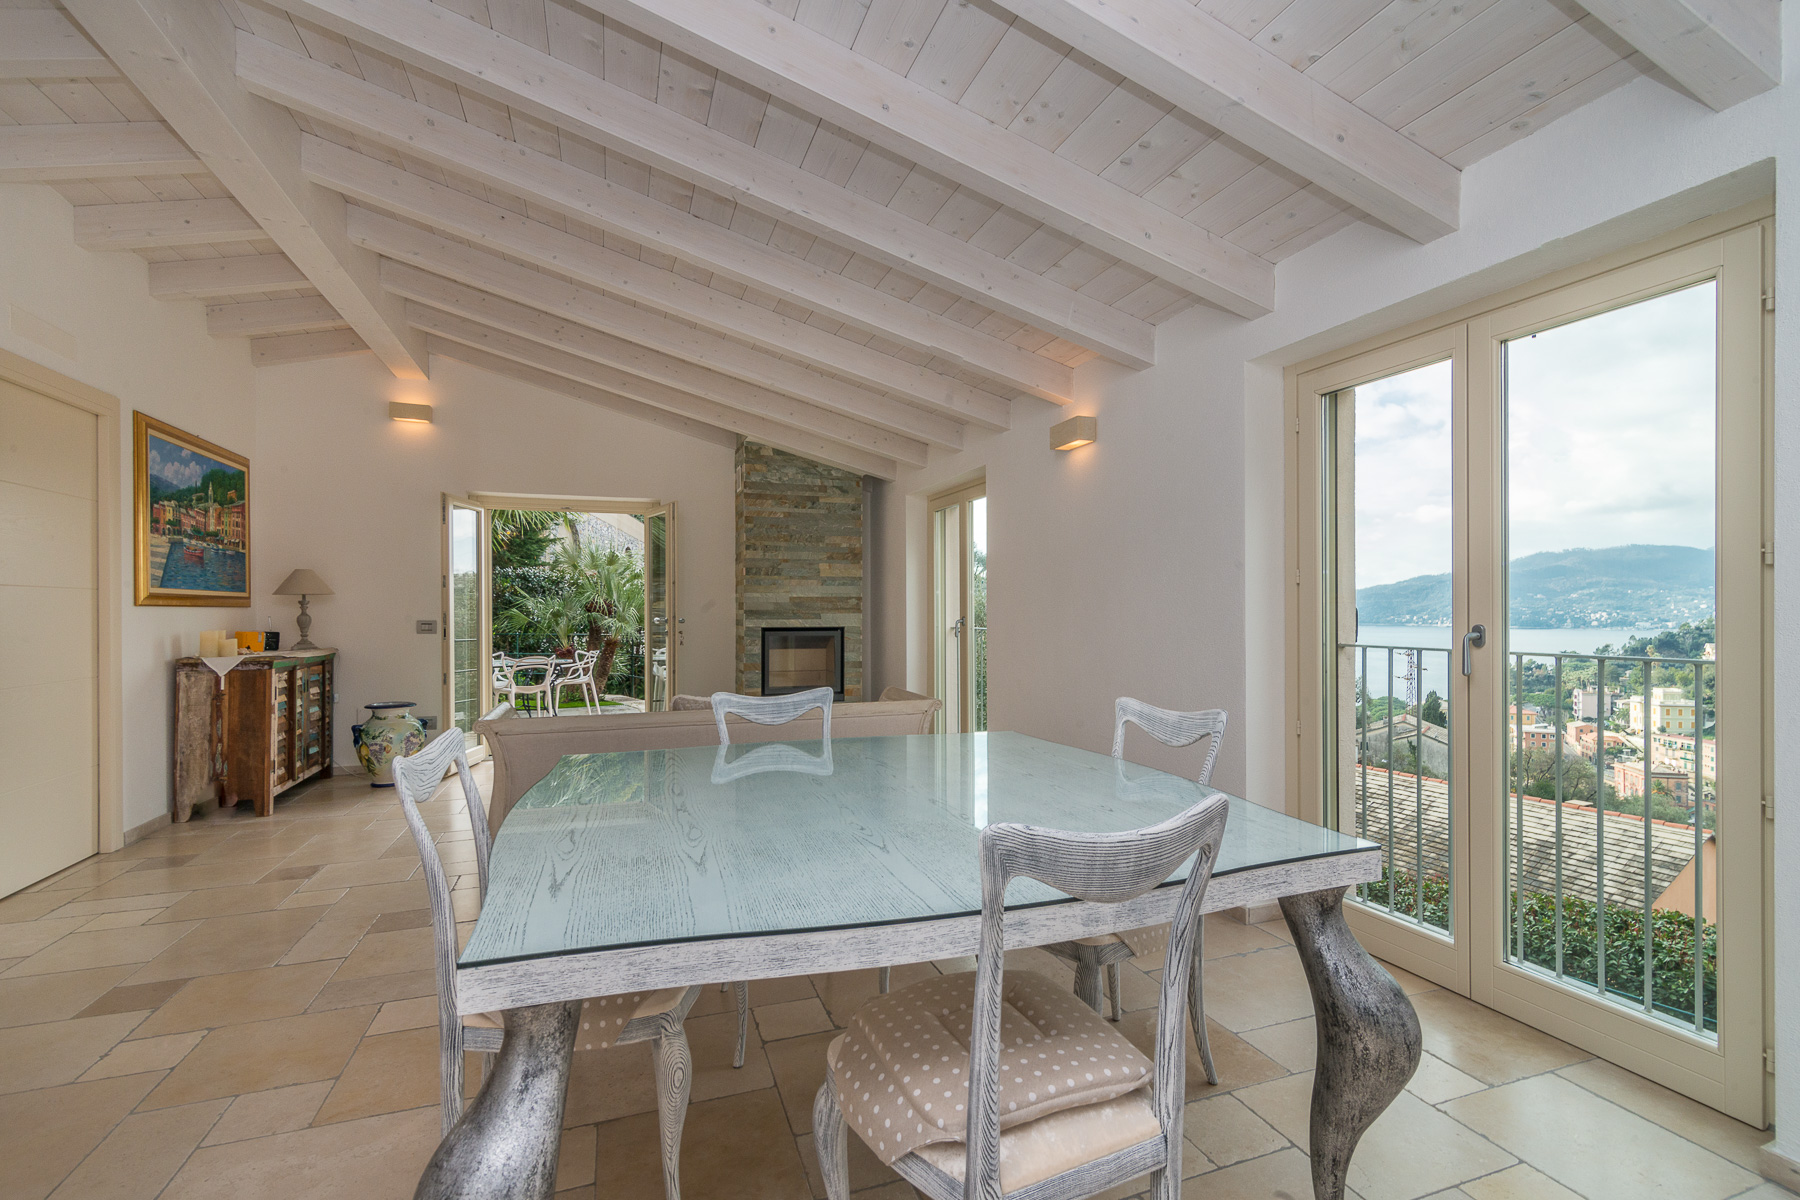 Additional photo for property listing at Charming villa with views on the Italian Riviera Via Solari e Queirolo Zoagli, Genoa 16035 Italien